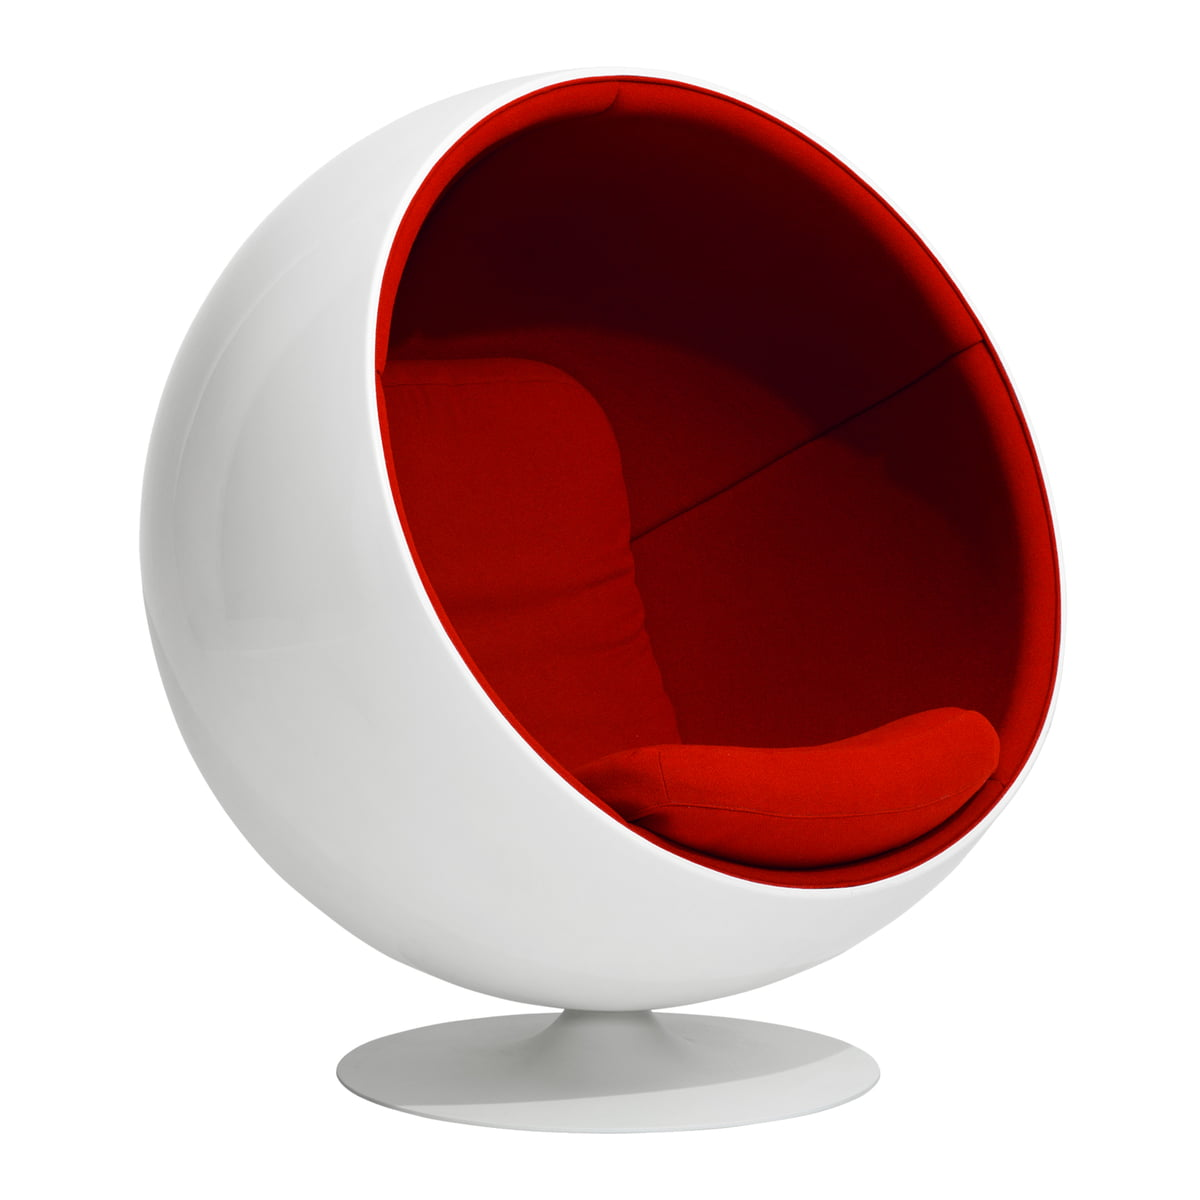 Eero-Aarnio-Originals-Ball-Chair-rot-Tonus-4-130-Freisteller